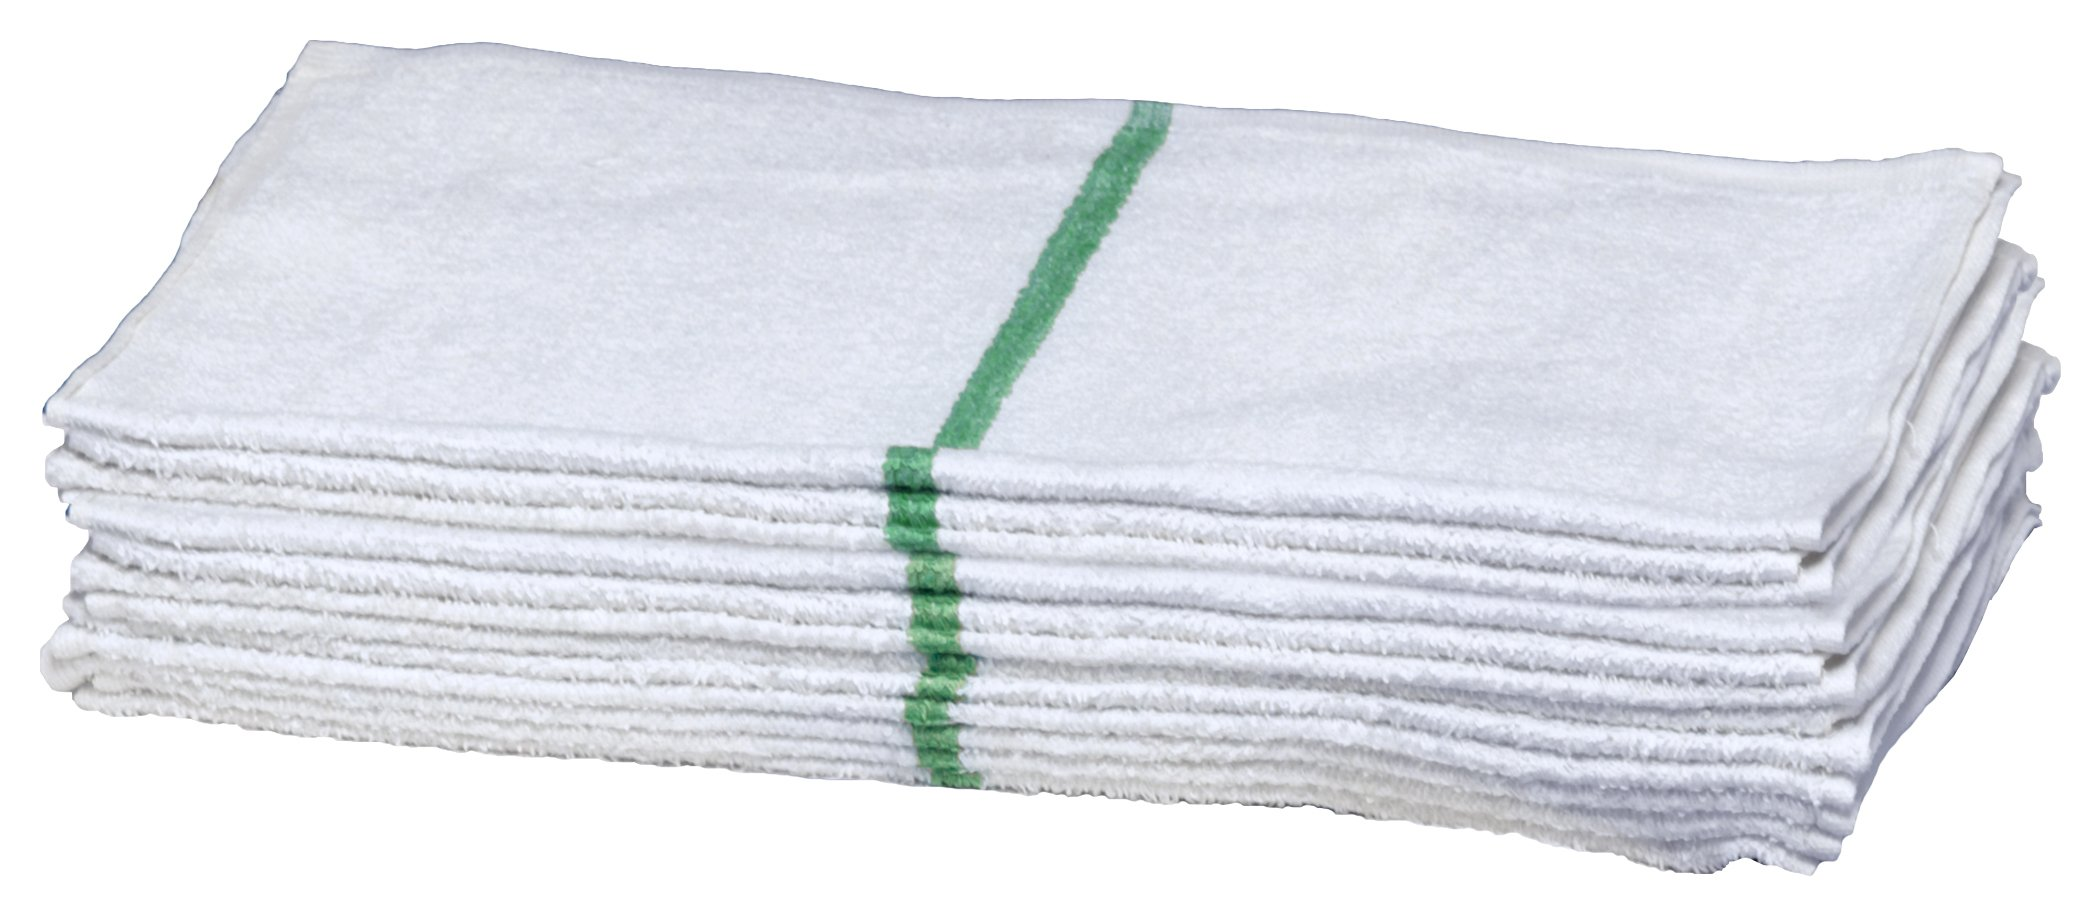 Pro-Clean Basics A51764 Striped Bar Towel, 16'' x 19'', Green (Pack of 300) by Pro-Clean Basics